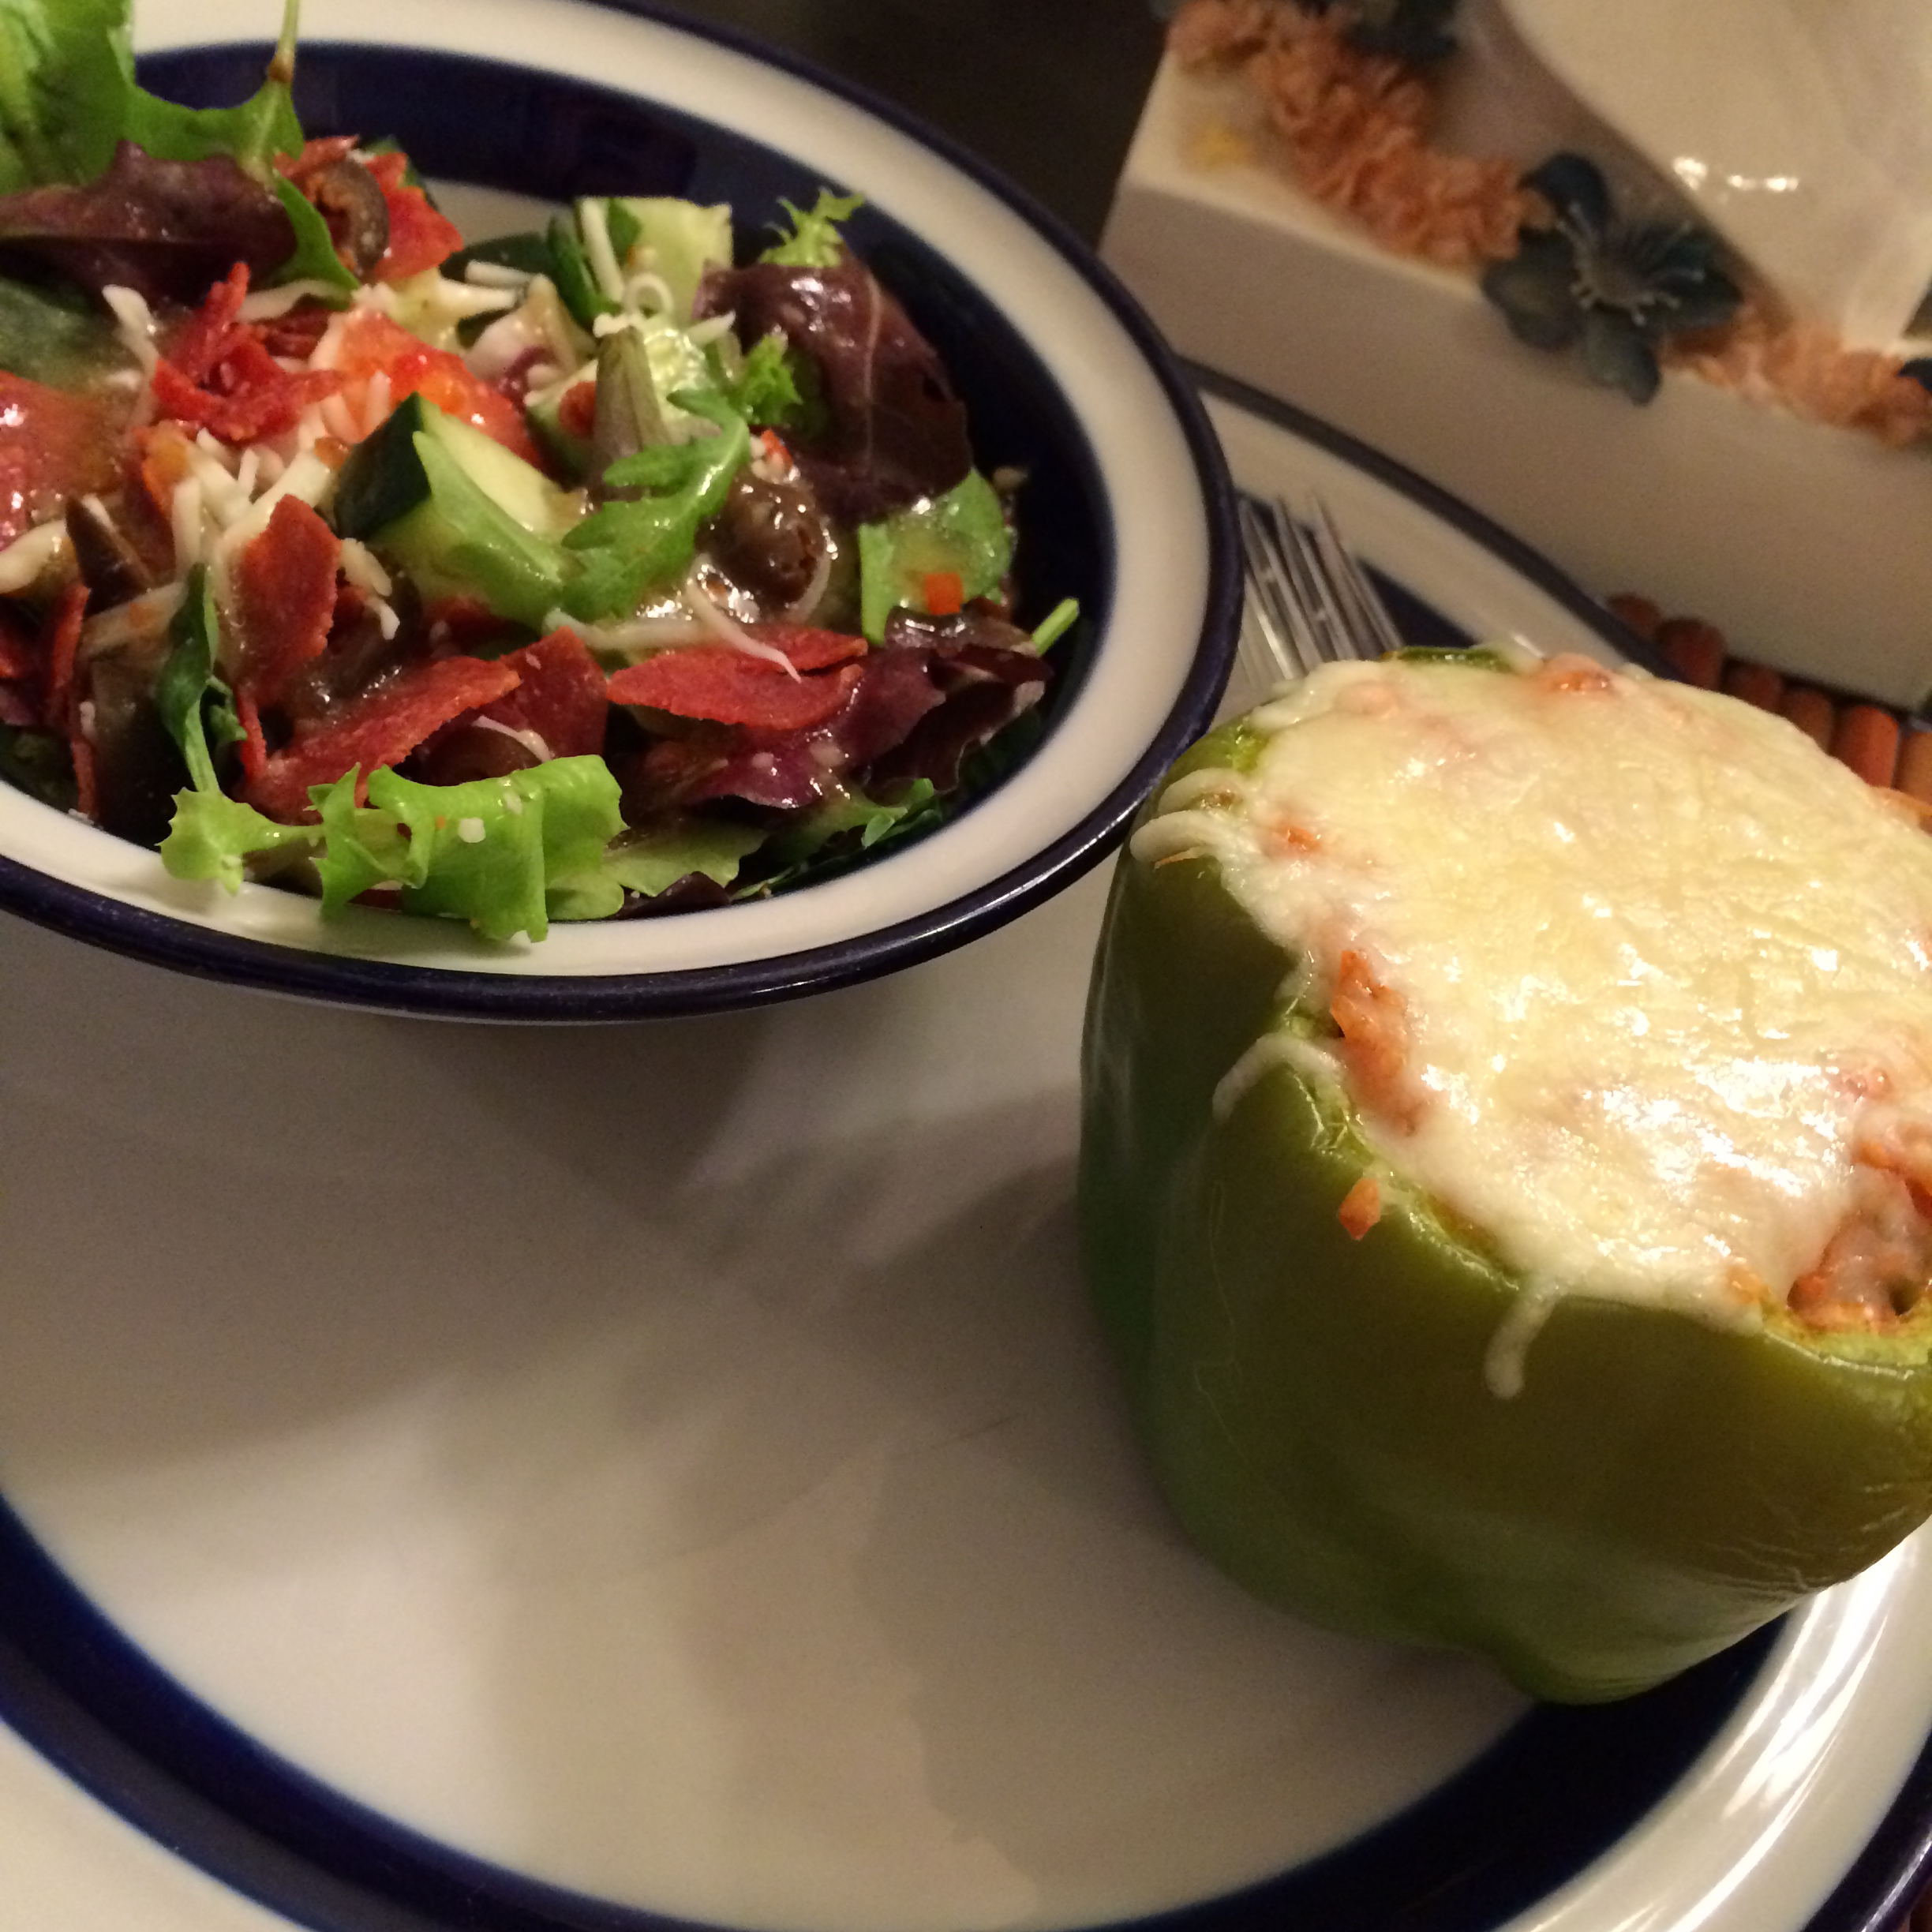 Stuffed Bell Peppers and TexItalian Chopped Salad